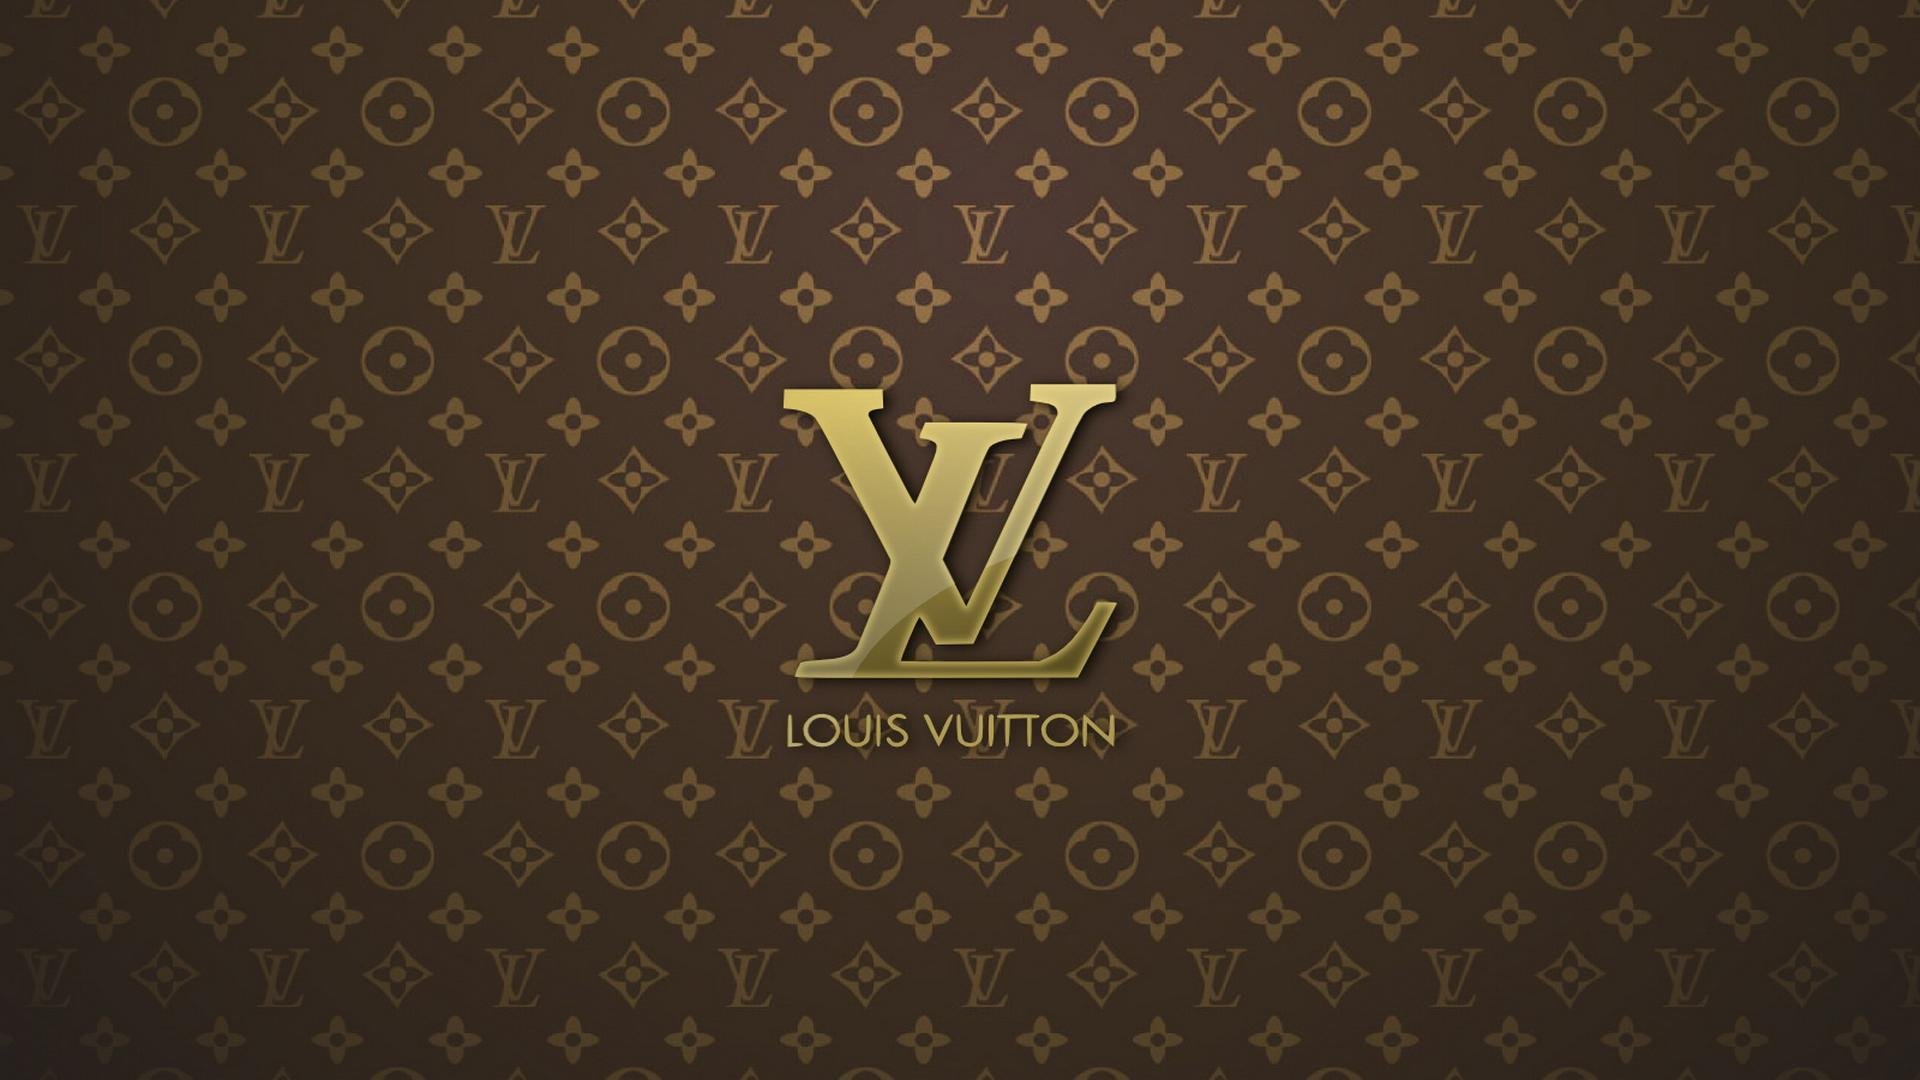 Inspirations from Louis Vuitton men's fashion trends for summer 2019 The Best Men's Fashion Trends For Summer 2019 Inspirations from Louis Vuitton cover men's fashion trends for summer 2019 The Best Men's Fashion Trends For Summer 2019 Inspirations from Louis Vuitton cover